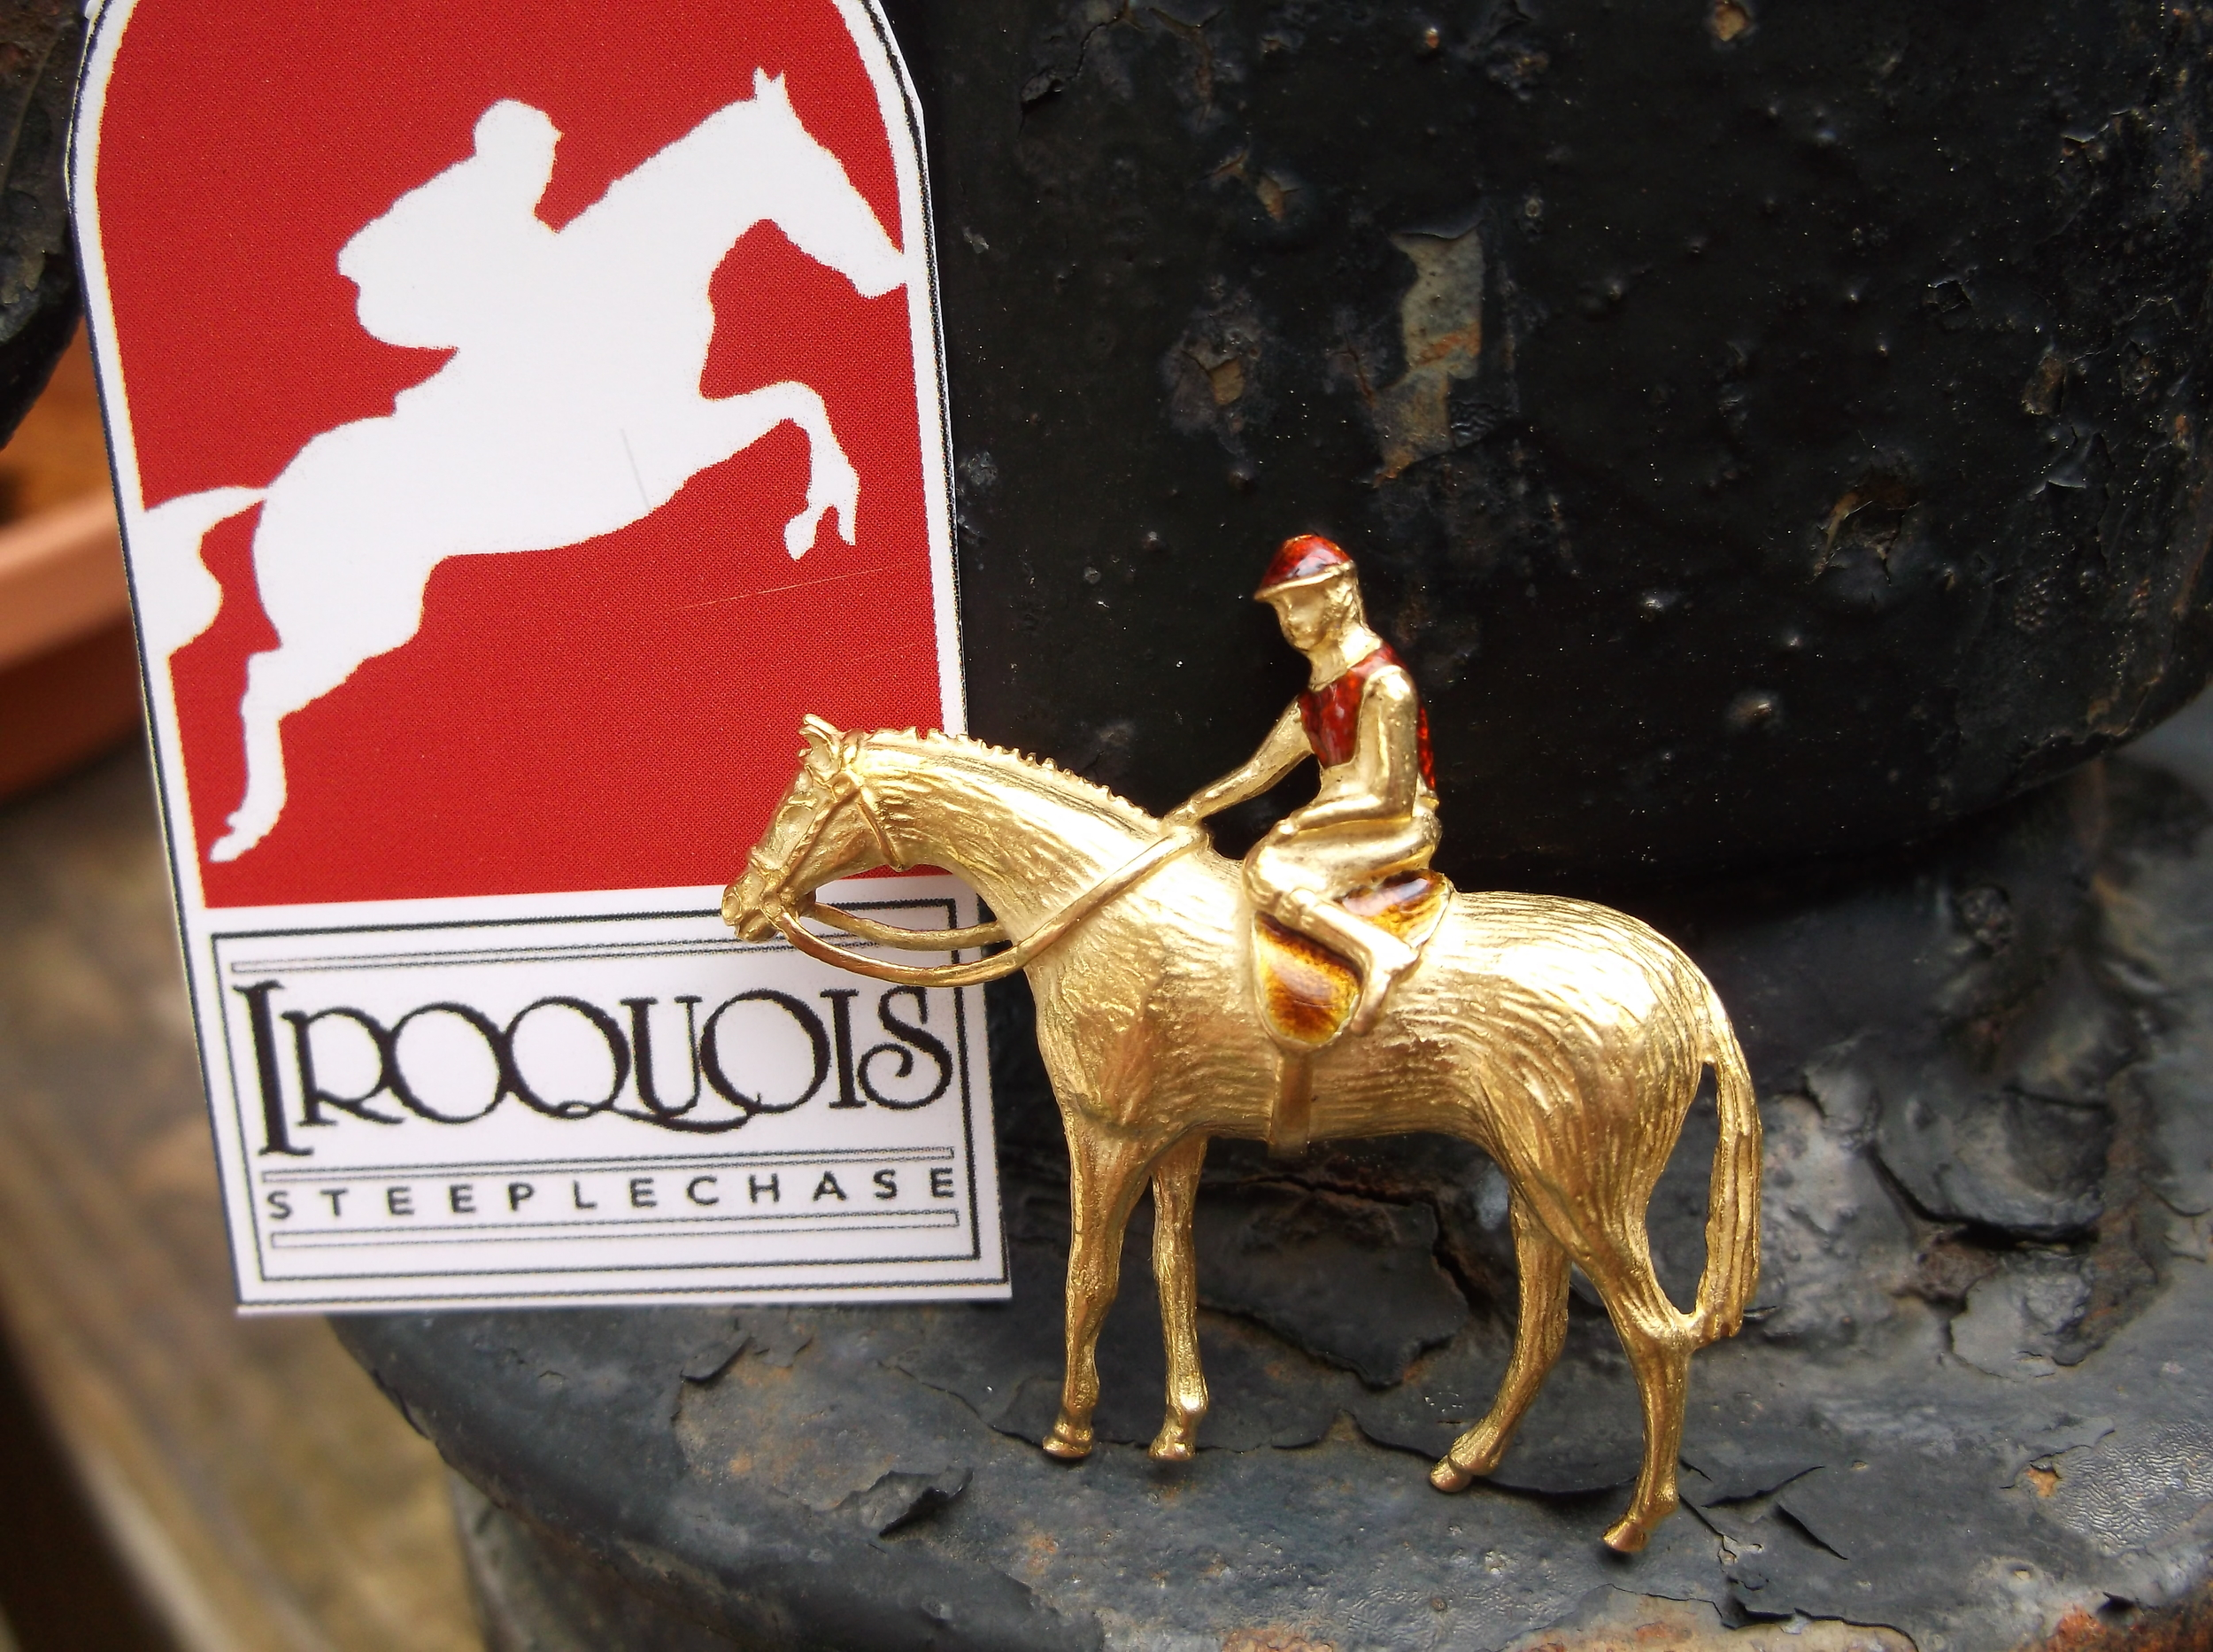 "SOLD - The perfect pin for you Iroquois Steeplechase attire! Beautiful 18K yellow gold horse and jockey pin with enameling on the jockey's silks! The pin is approximately 1.5"" wide by 1.5"" in height."